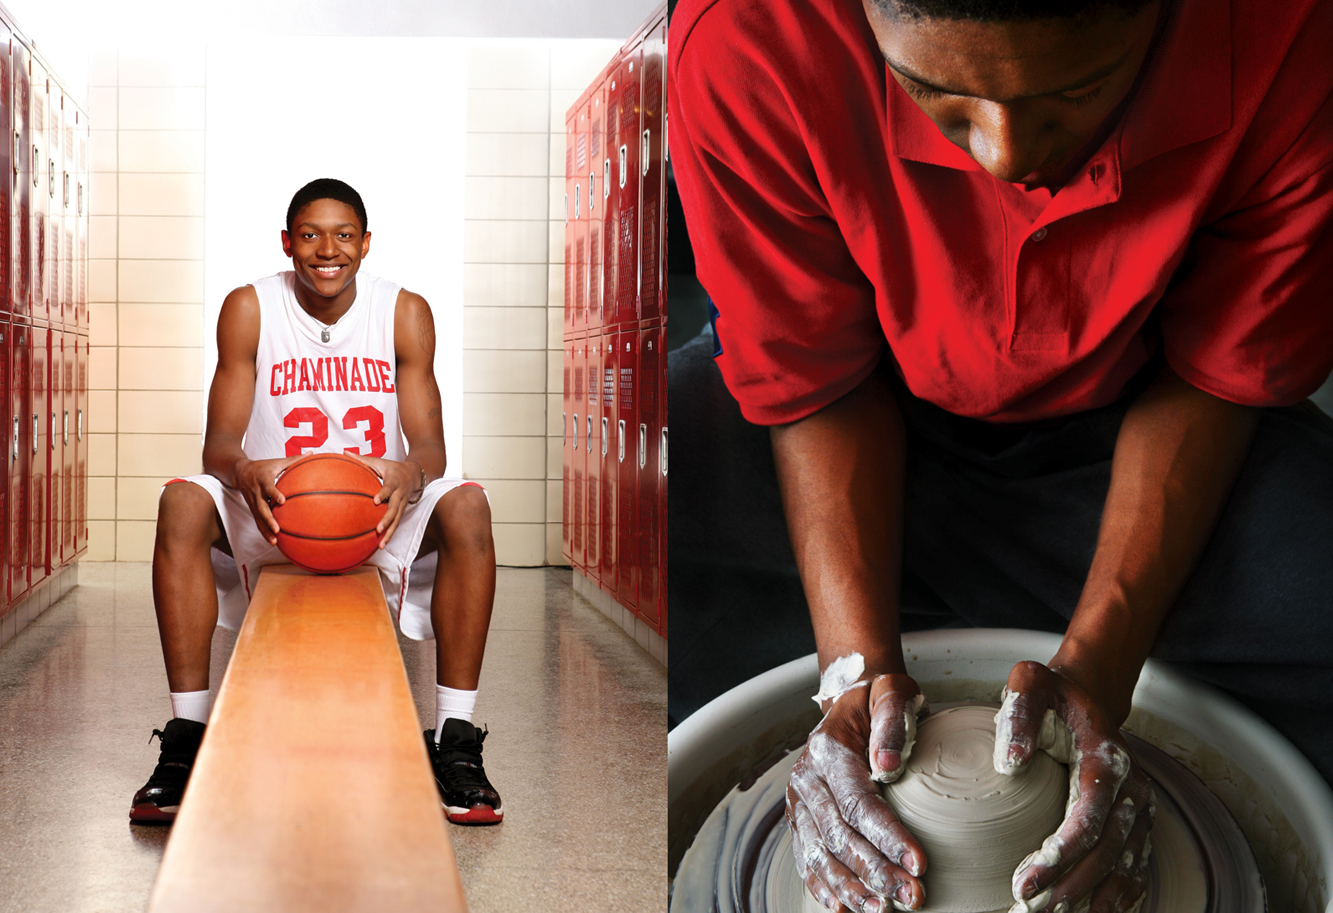 Chaminade student photography: basketball and pottery